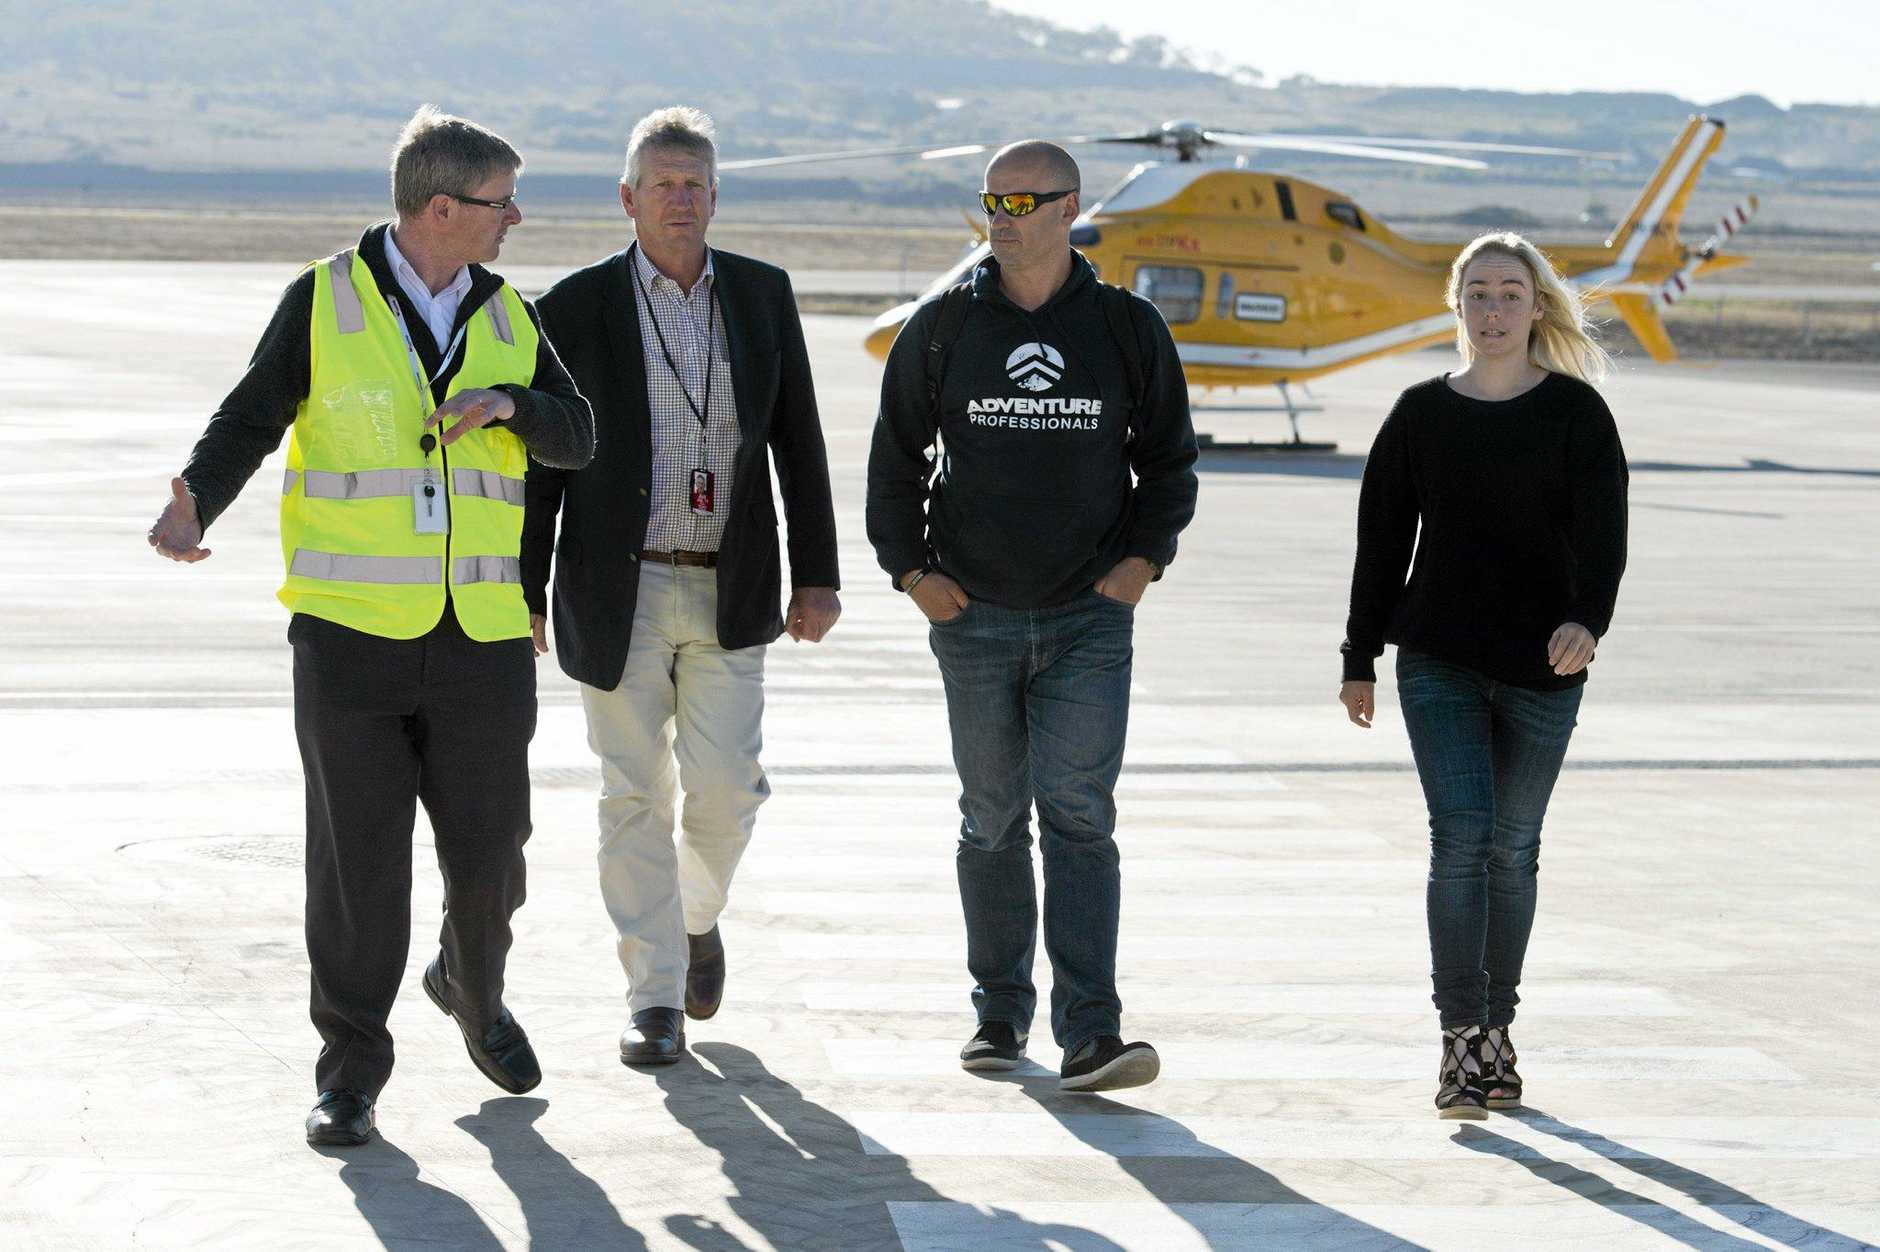 SHE IS HOME: Walking into Wellcamp Airport yesterday are (from left) Wellcamp Airport general manager Phil Gregory and Denis Wagner with Glenn and Alyssa Azar after their arrival by helicopter.